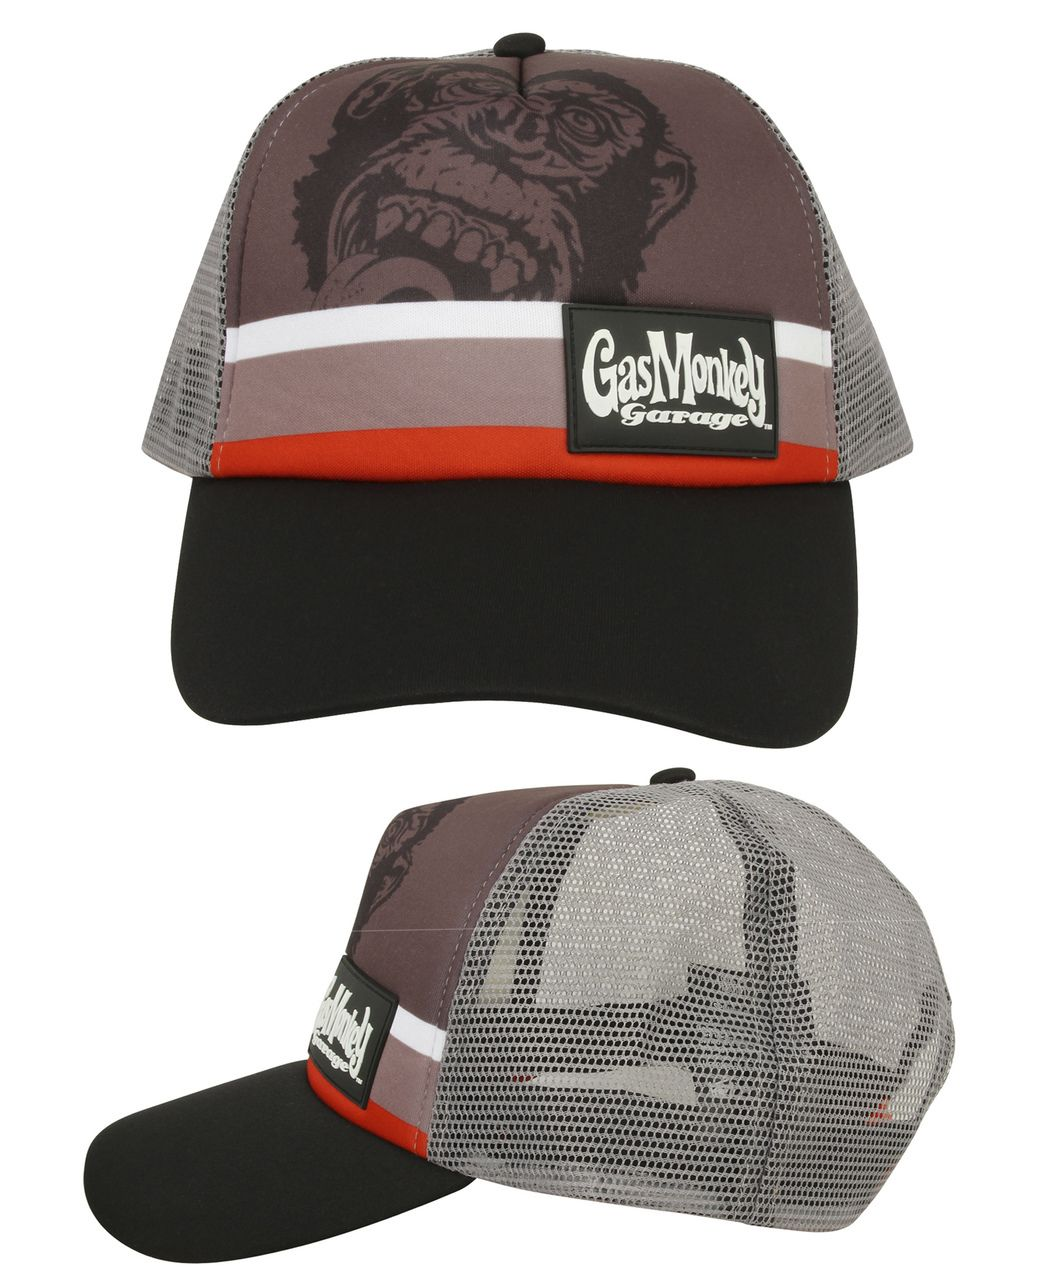 bfc05701c5c GMG Trucker Gas Monkey Garage Cap (Multi-Colour) GMG Trucker cap with Gas  Monkey Garage patch on a grey front and contrasting panels that work nicely  with ...